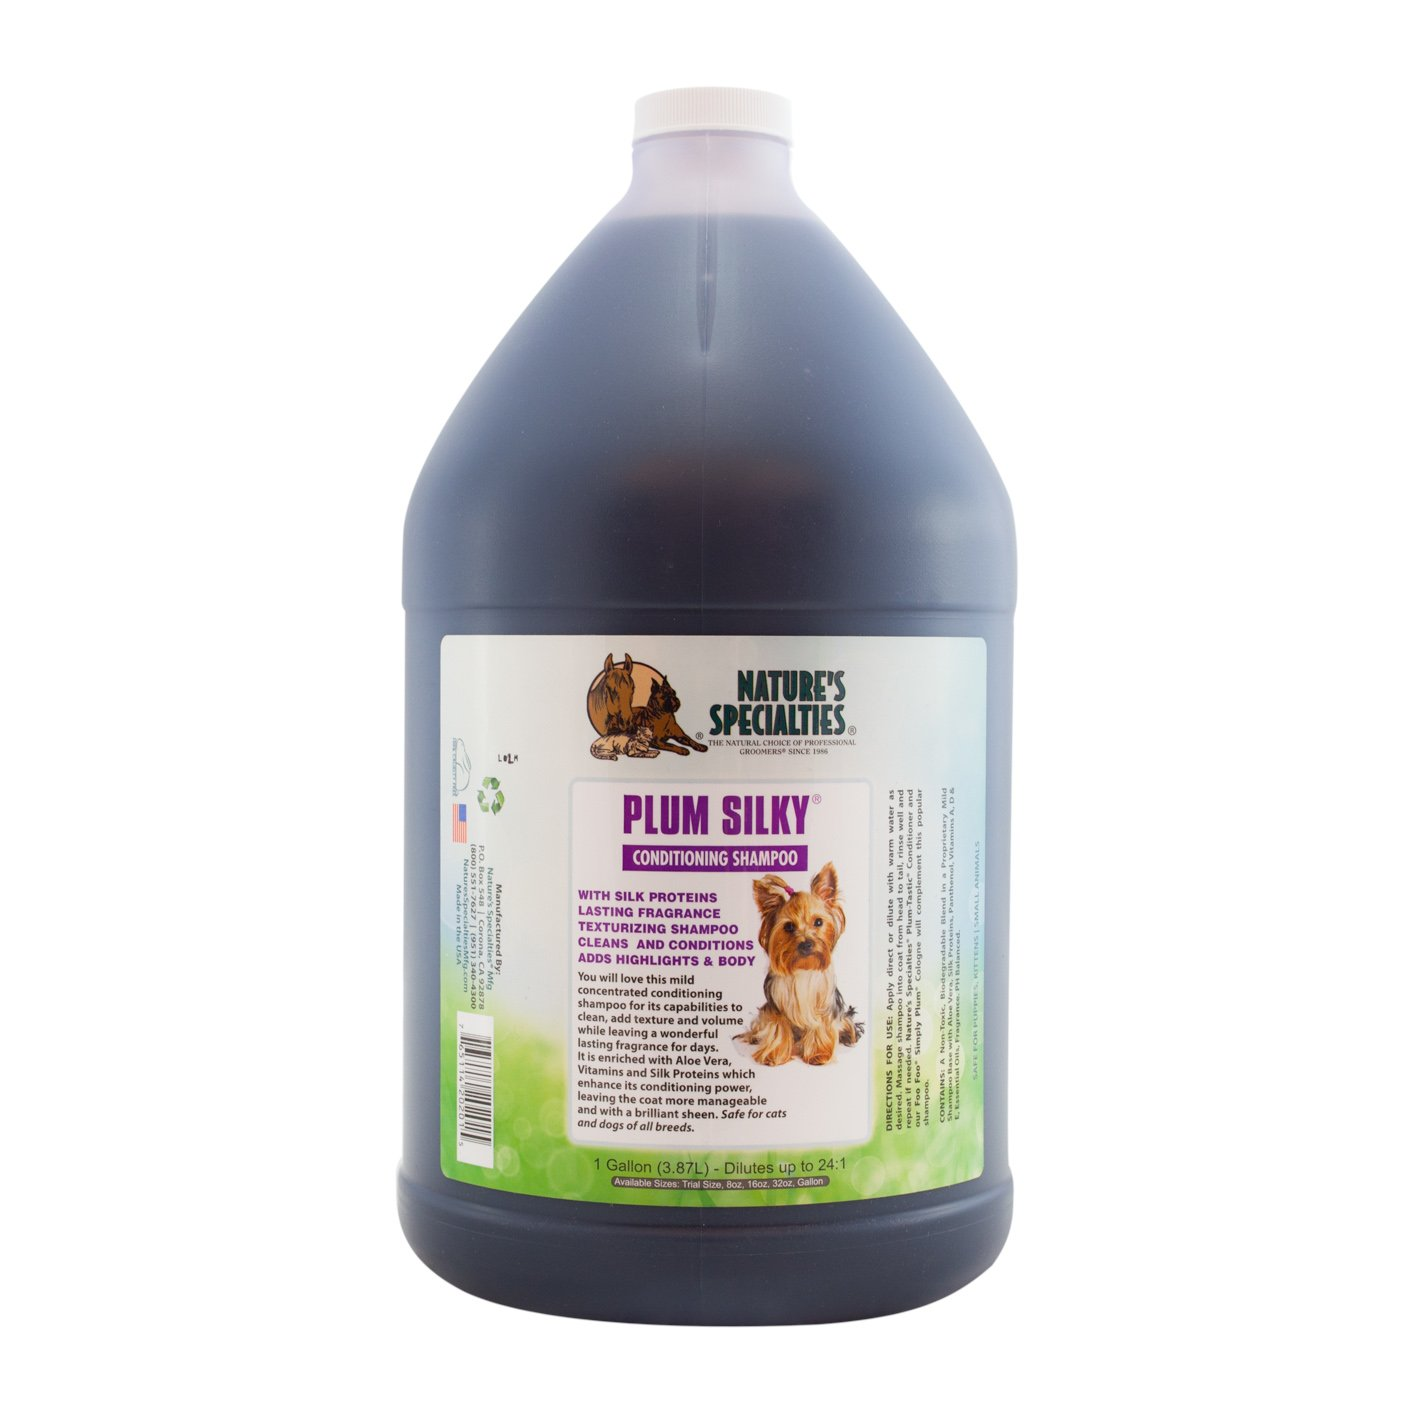 Nature's Specialties Plum Silky Shampoo for Pets by Nature's Specialties Mfg